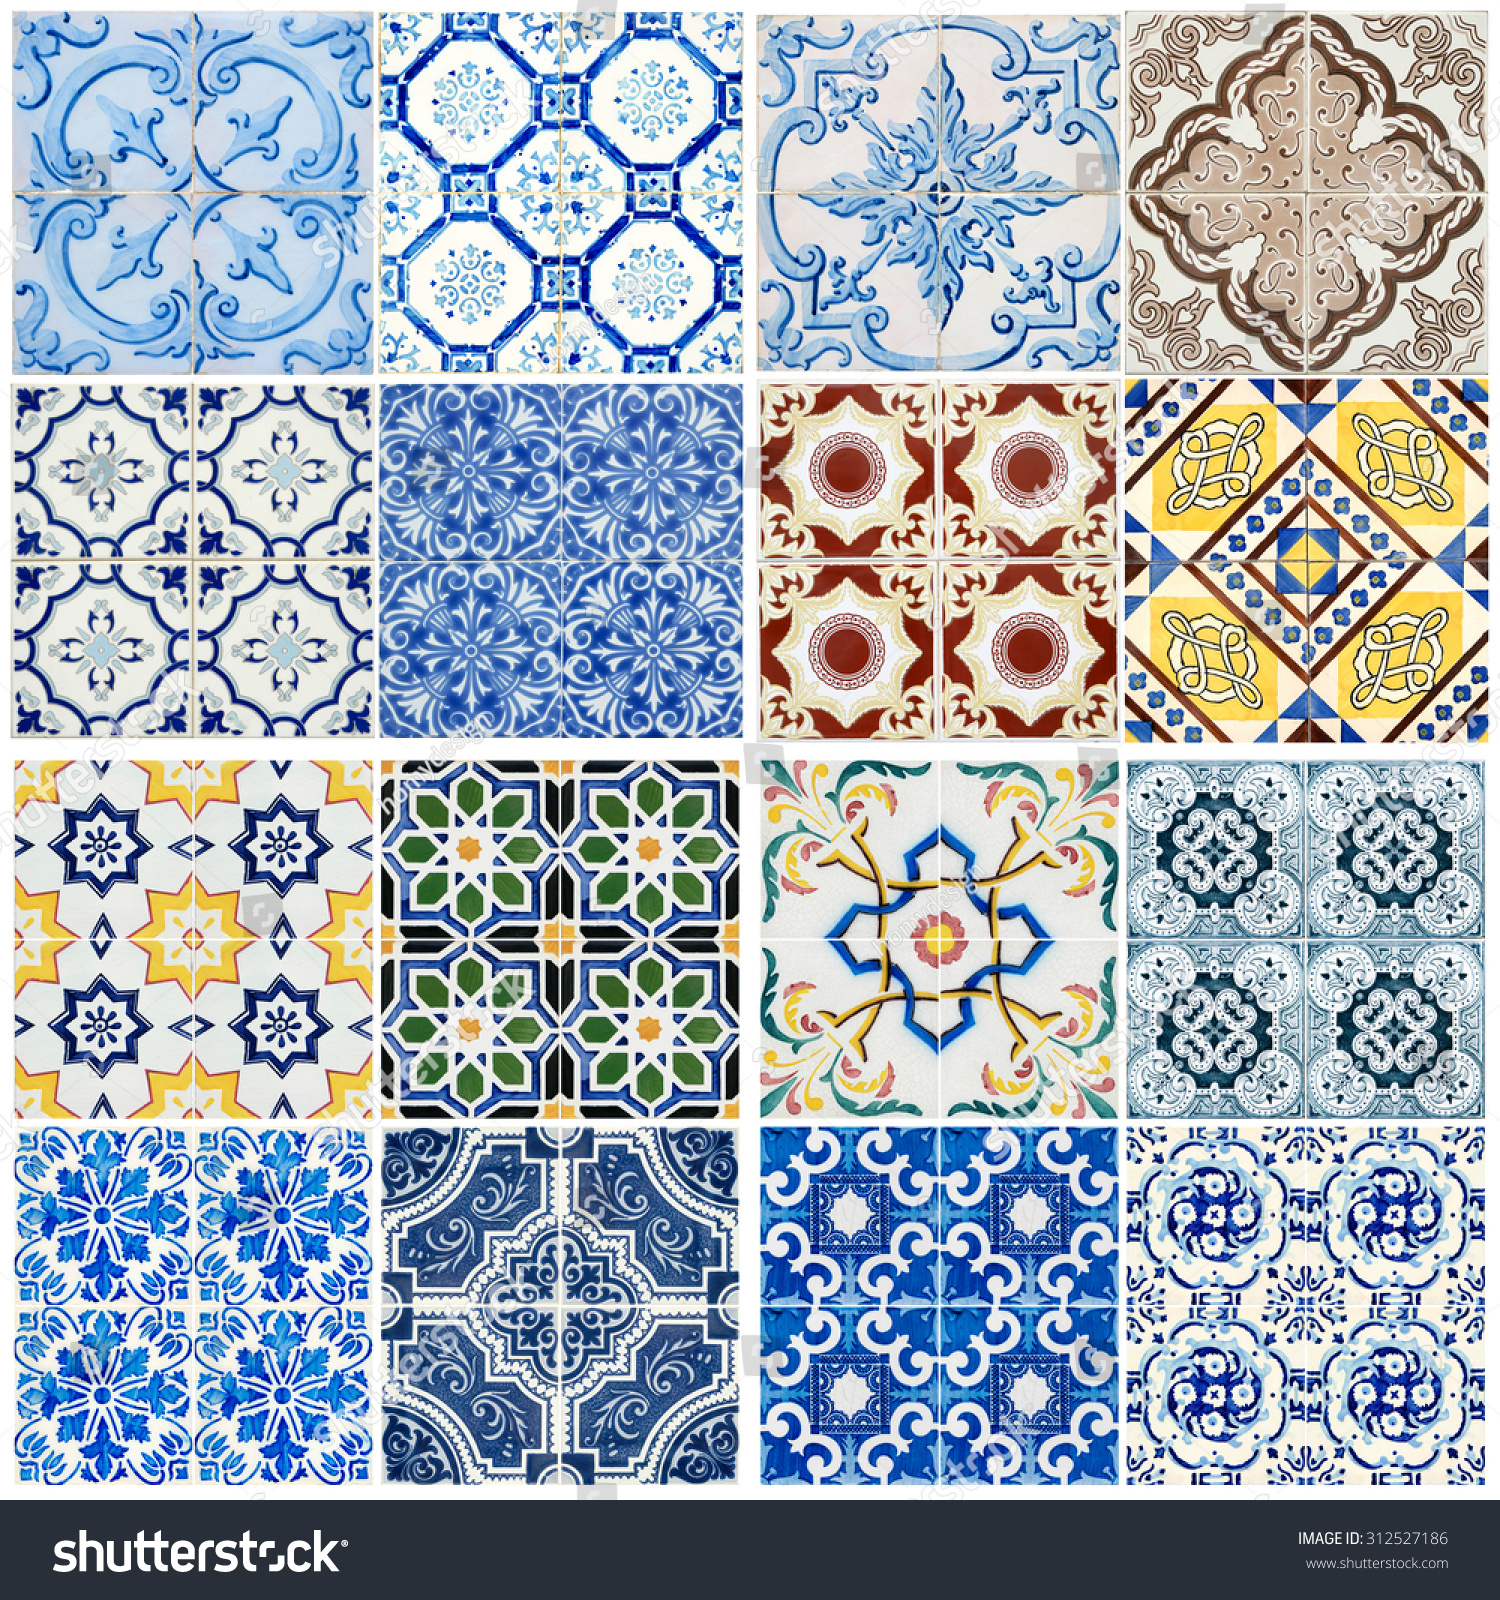 Colorful Vintage Ceramic Tiles Wall Decoration Stock Photo (100 ...